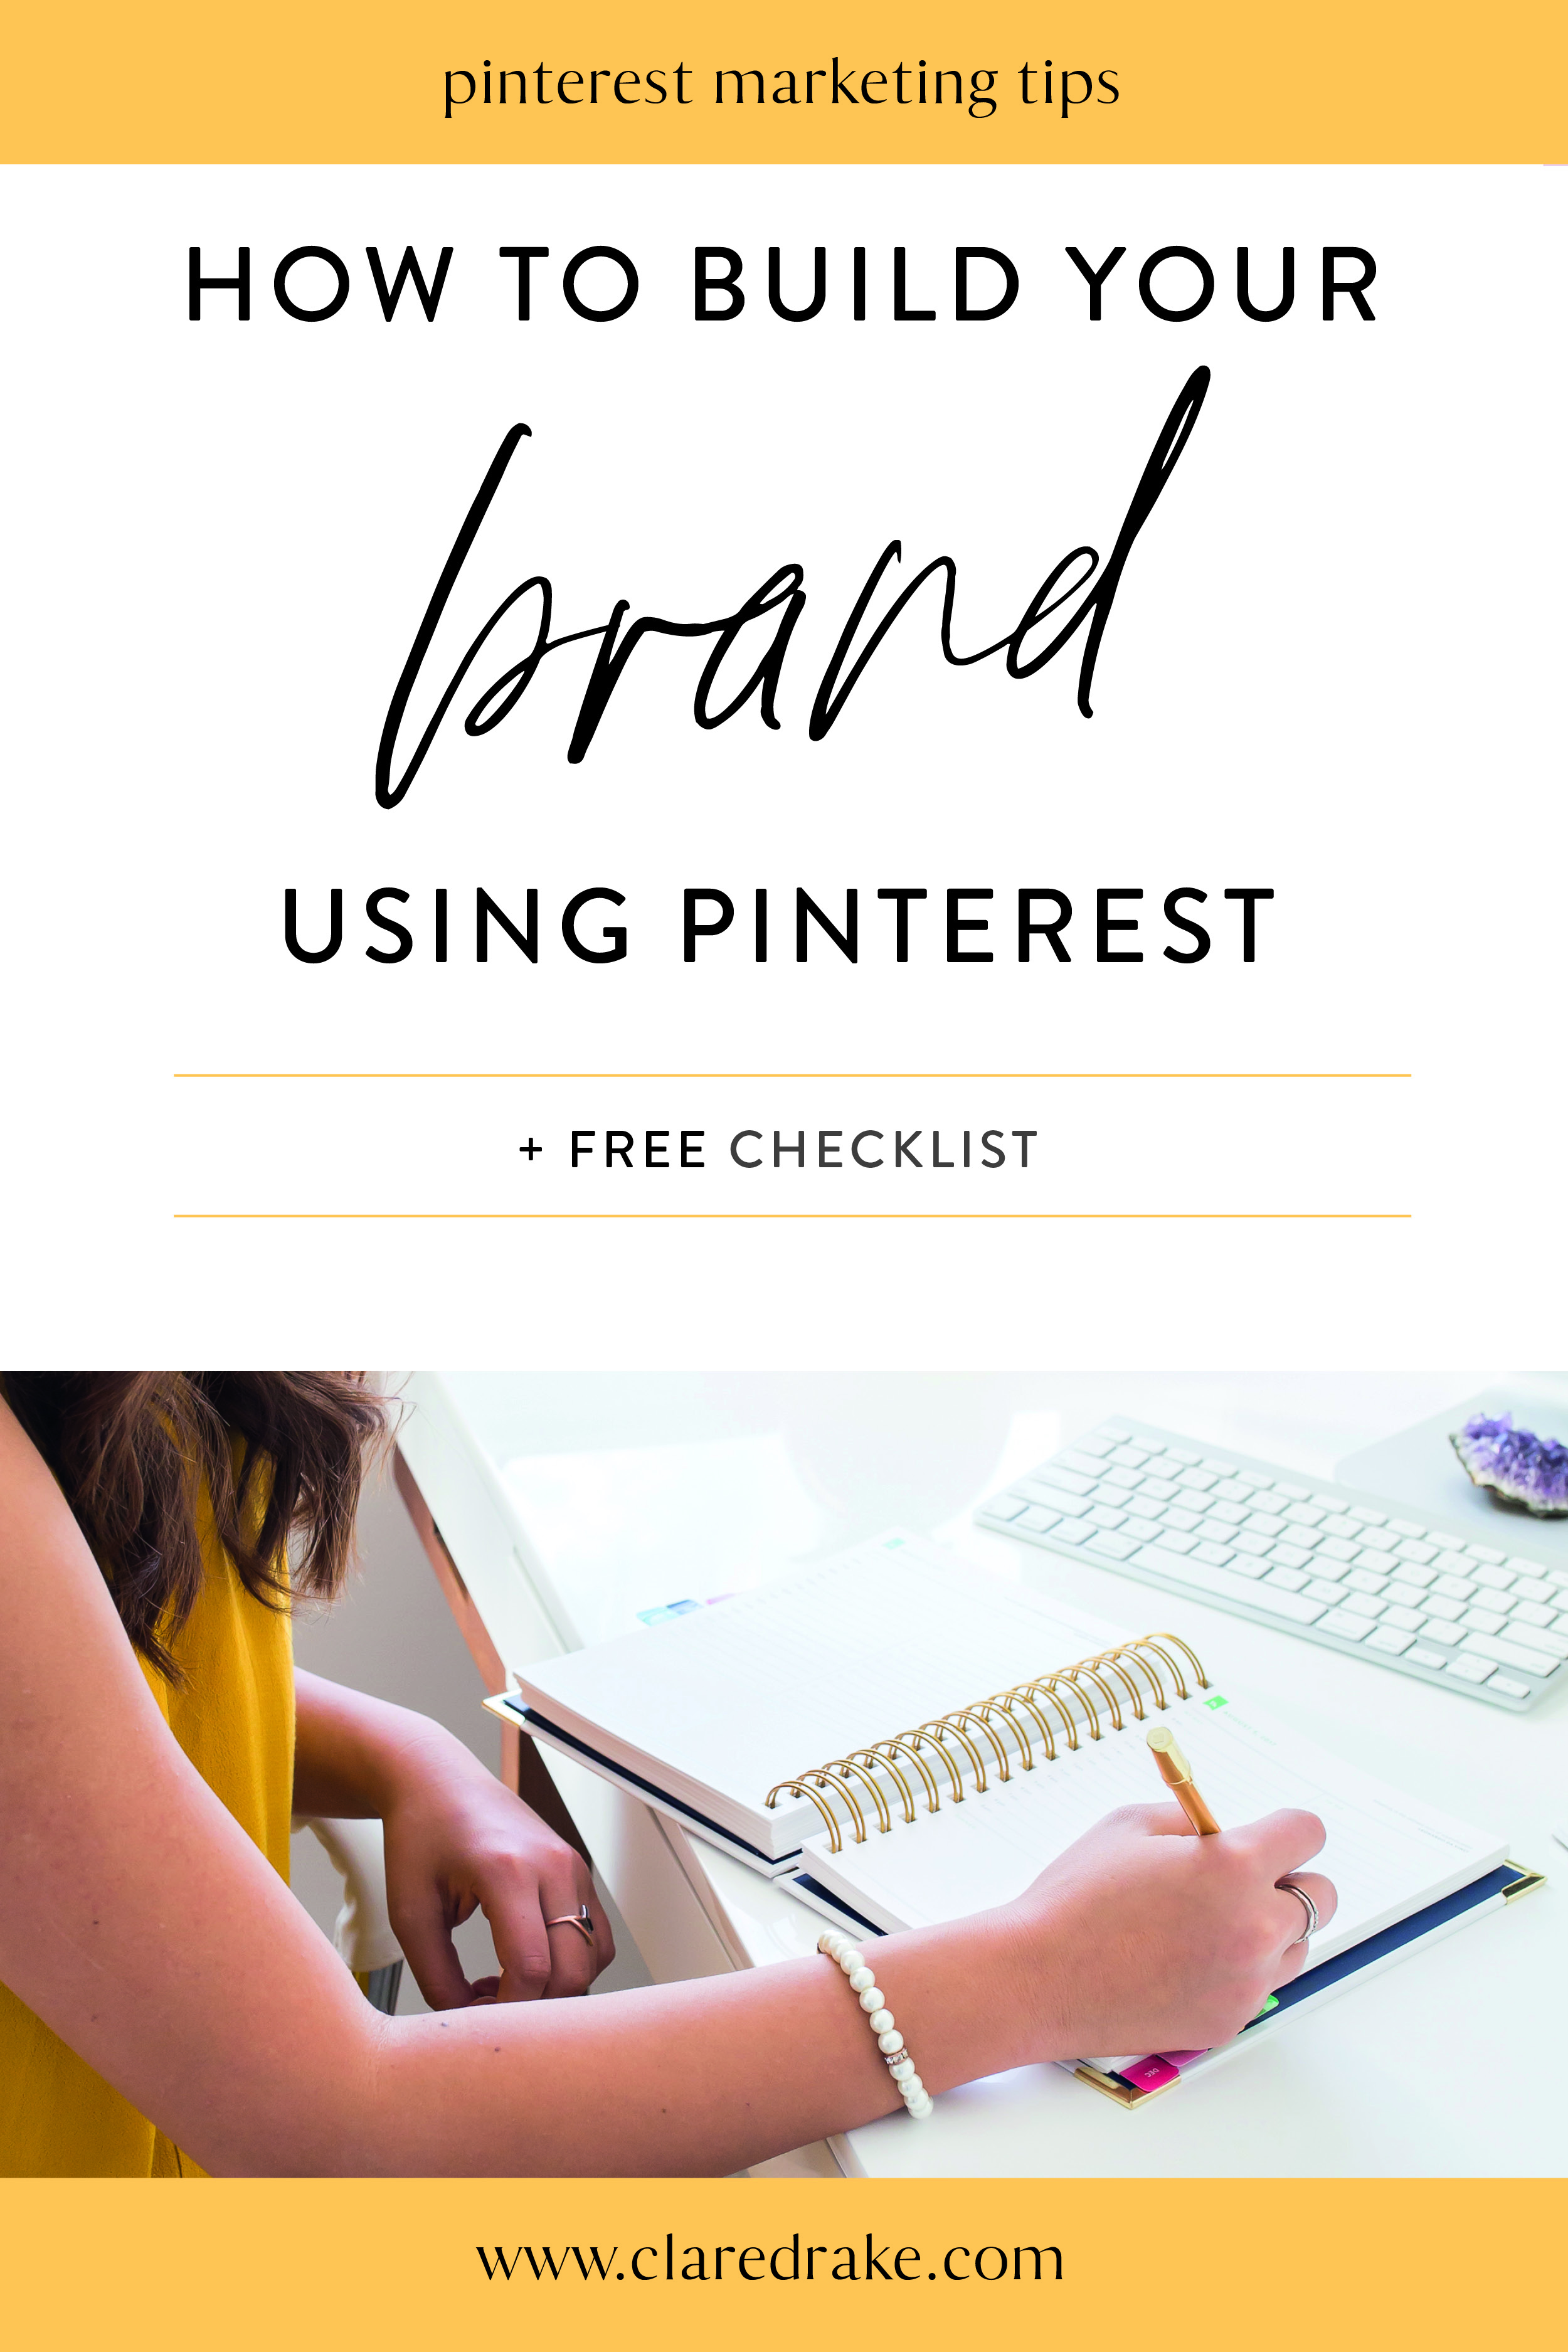 1. how to build your brand using pinterest.jpg